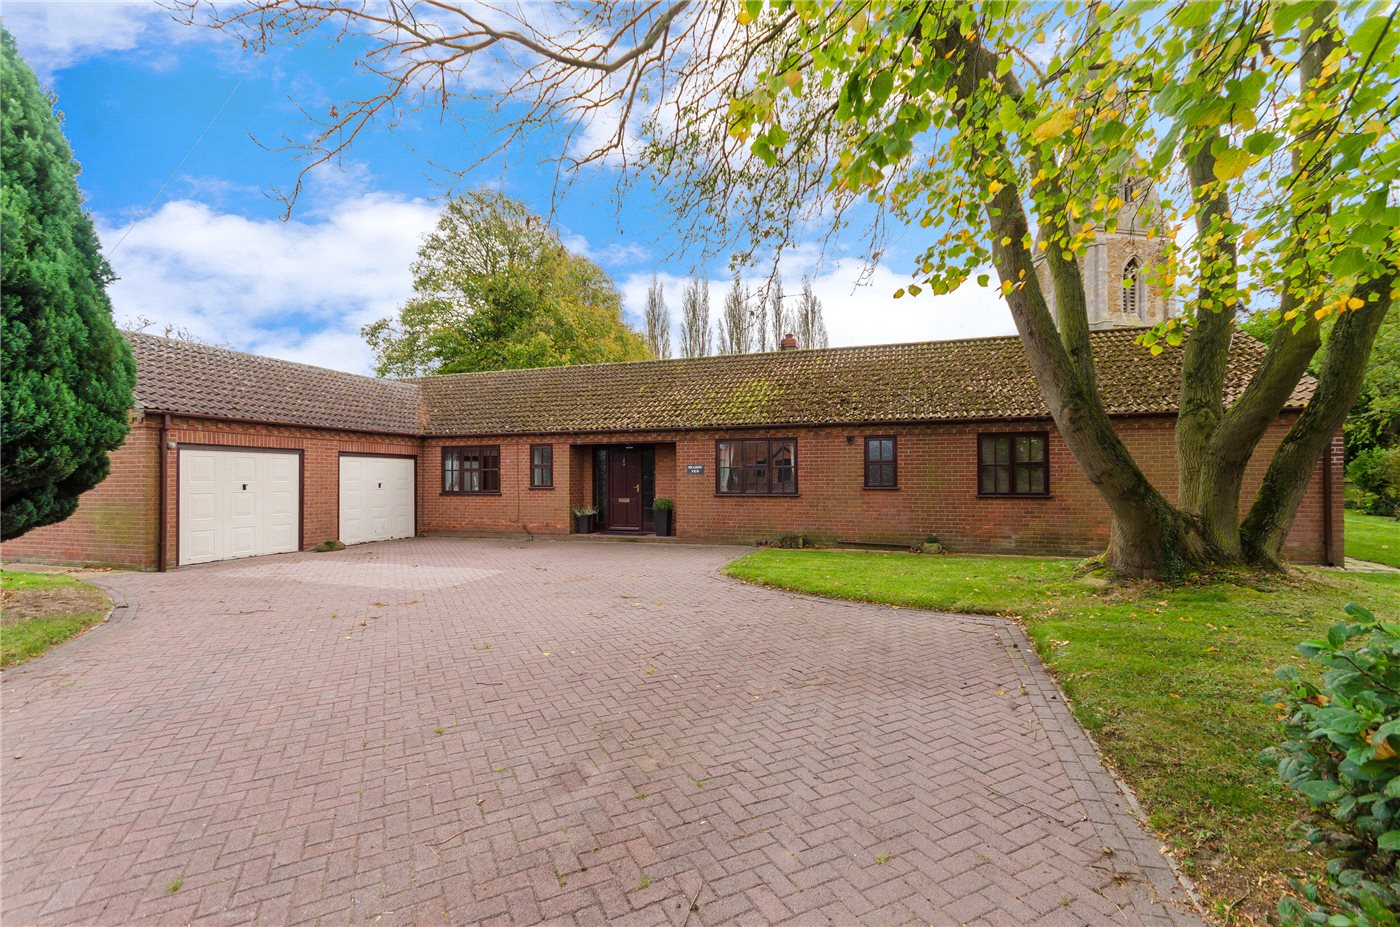 4 Bedrooms Detached Bungalow for sale in Bridge Street, Marston, Grantham, NG32